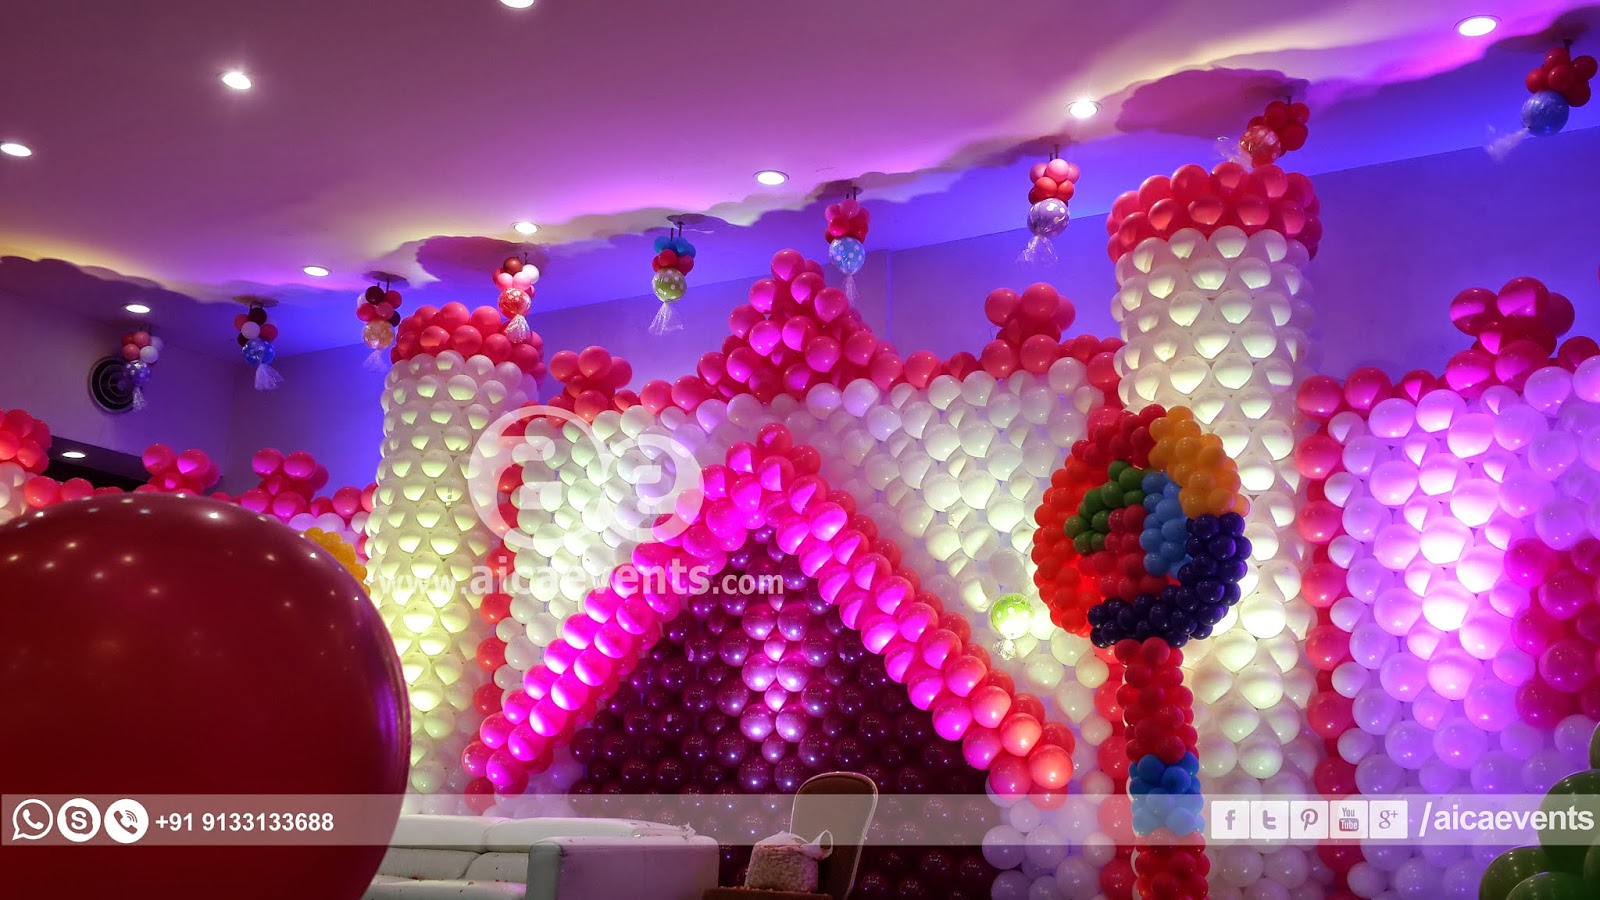 Aicaevents India Castle with Balloon Wall Decoration